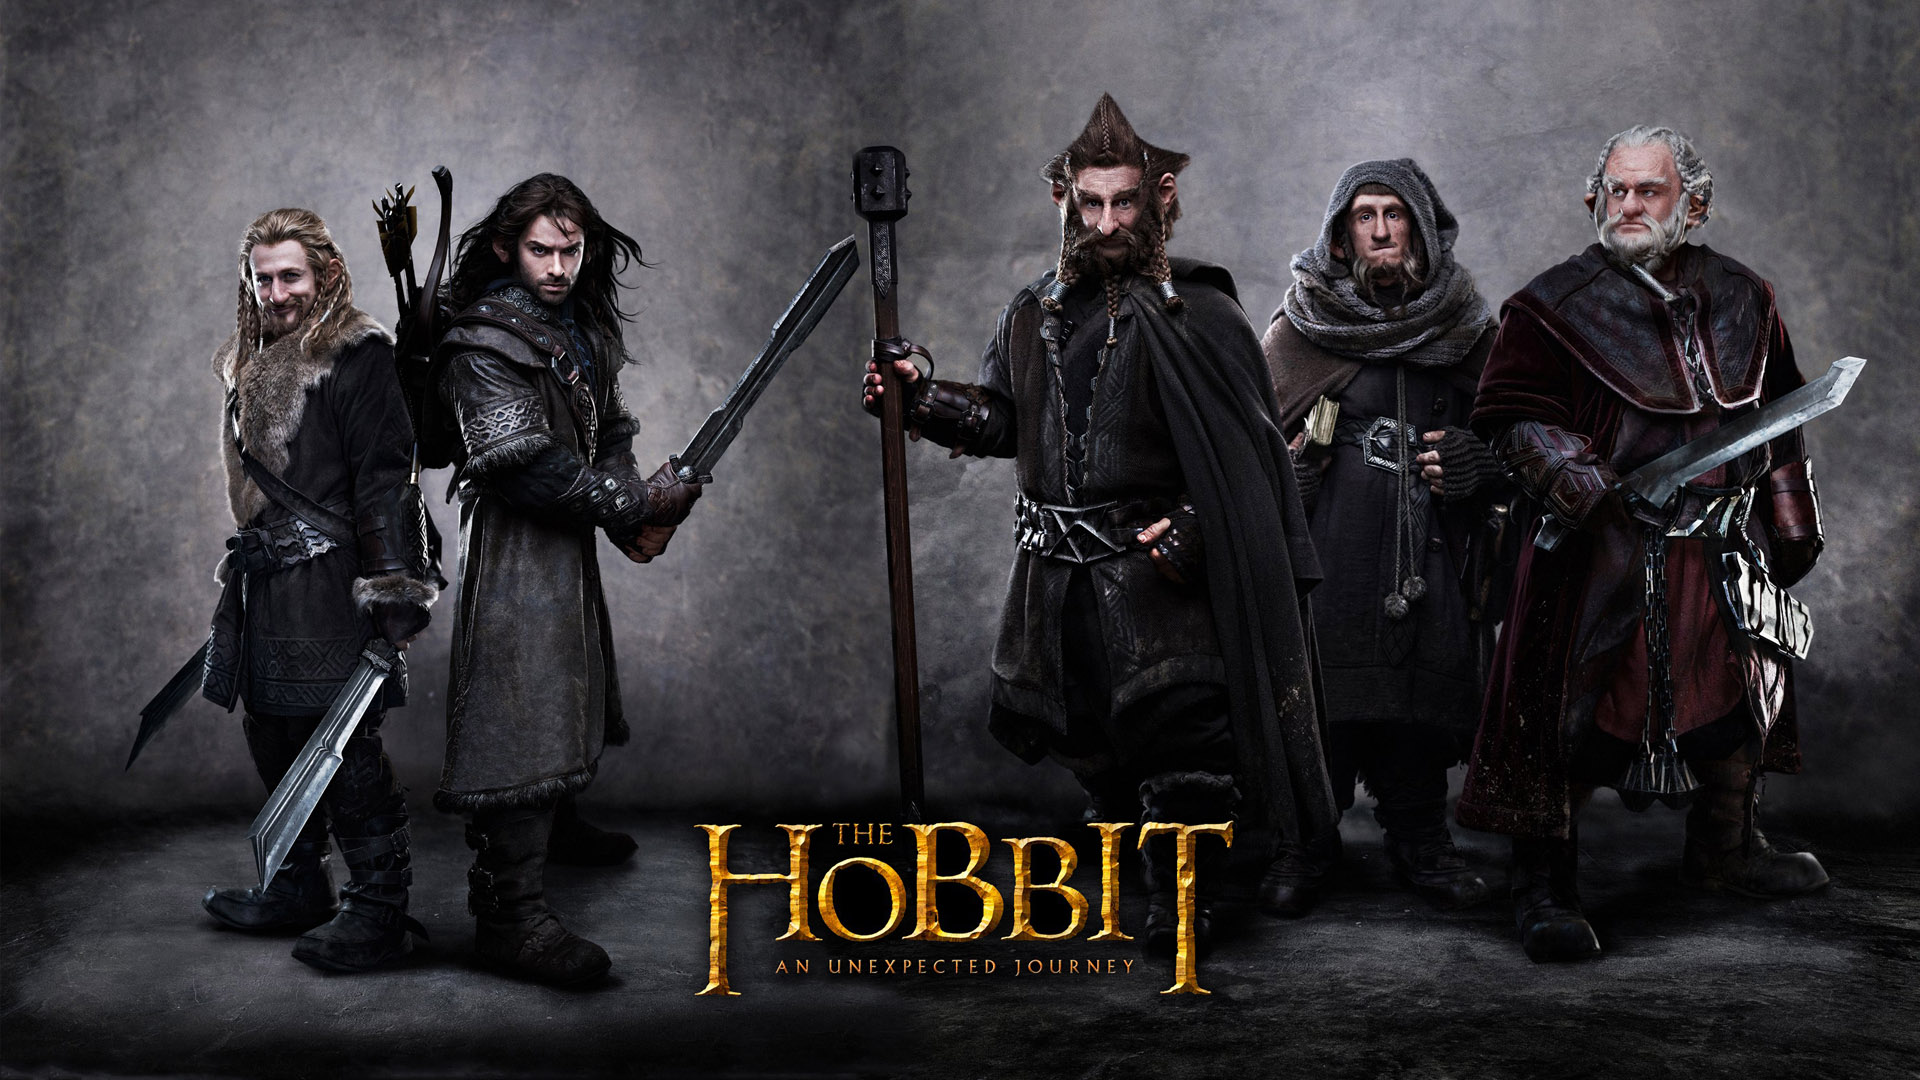 The Hobbit Wallpaper 1920x1080 Wallpapers 1920x1080 Wallpapers 1920x1080